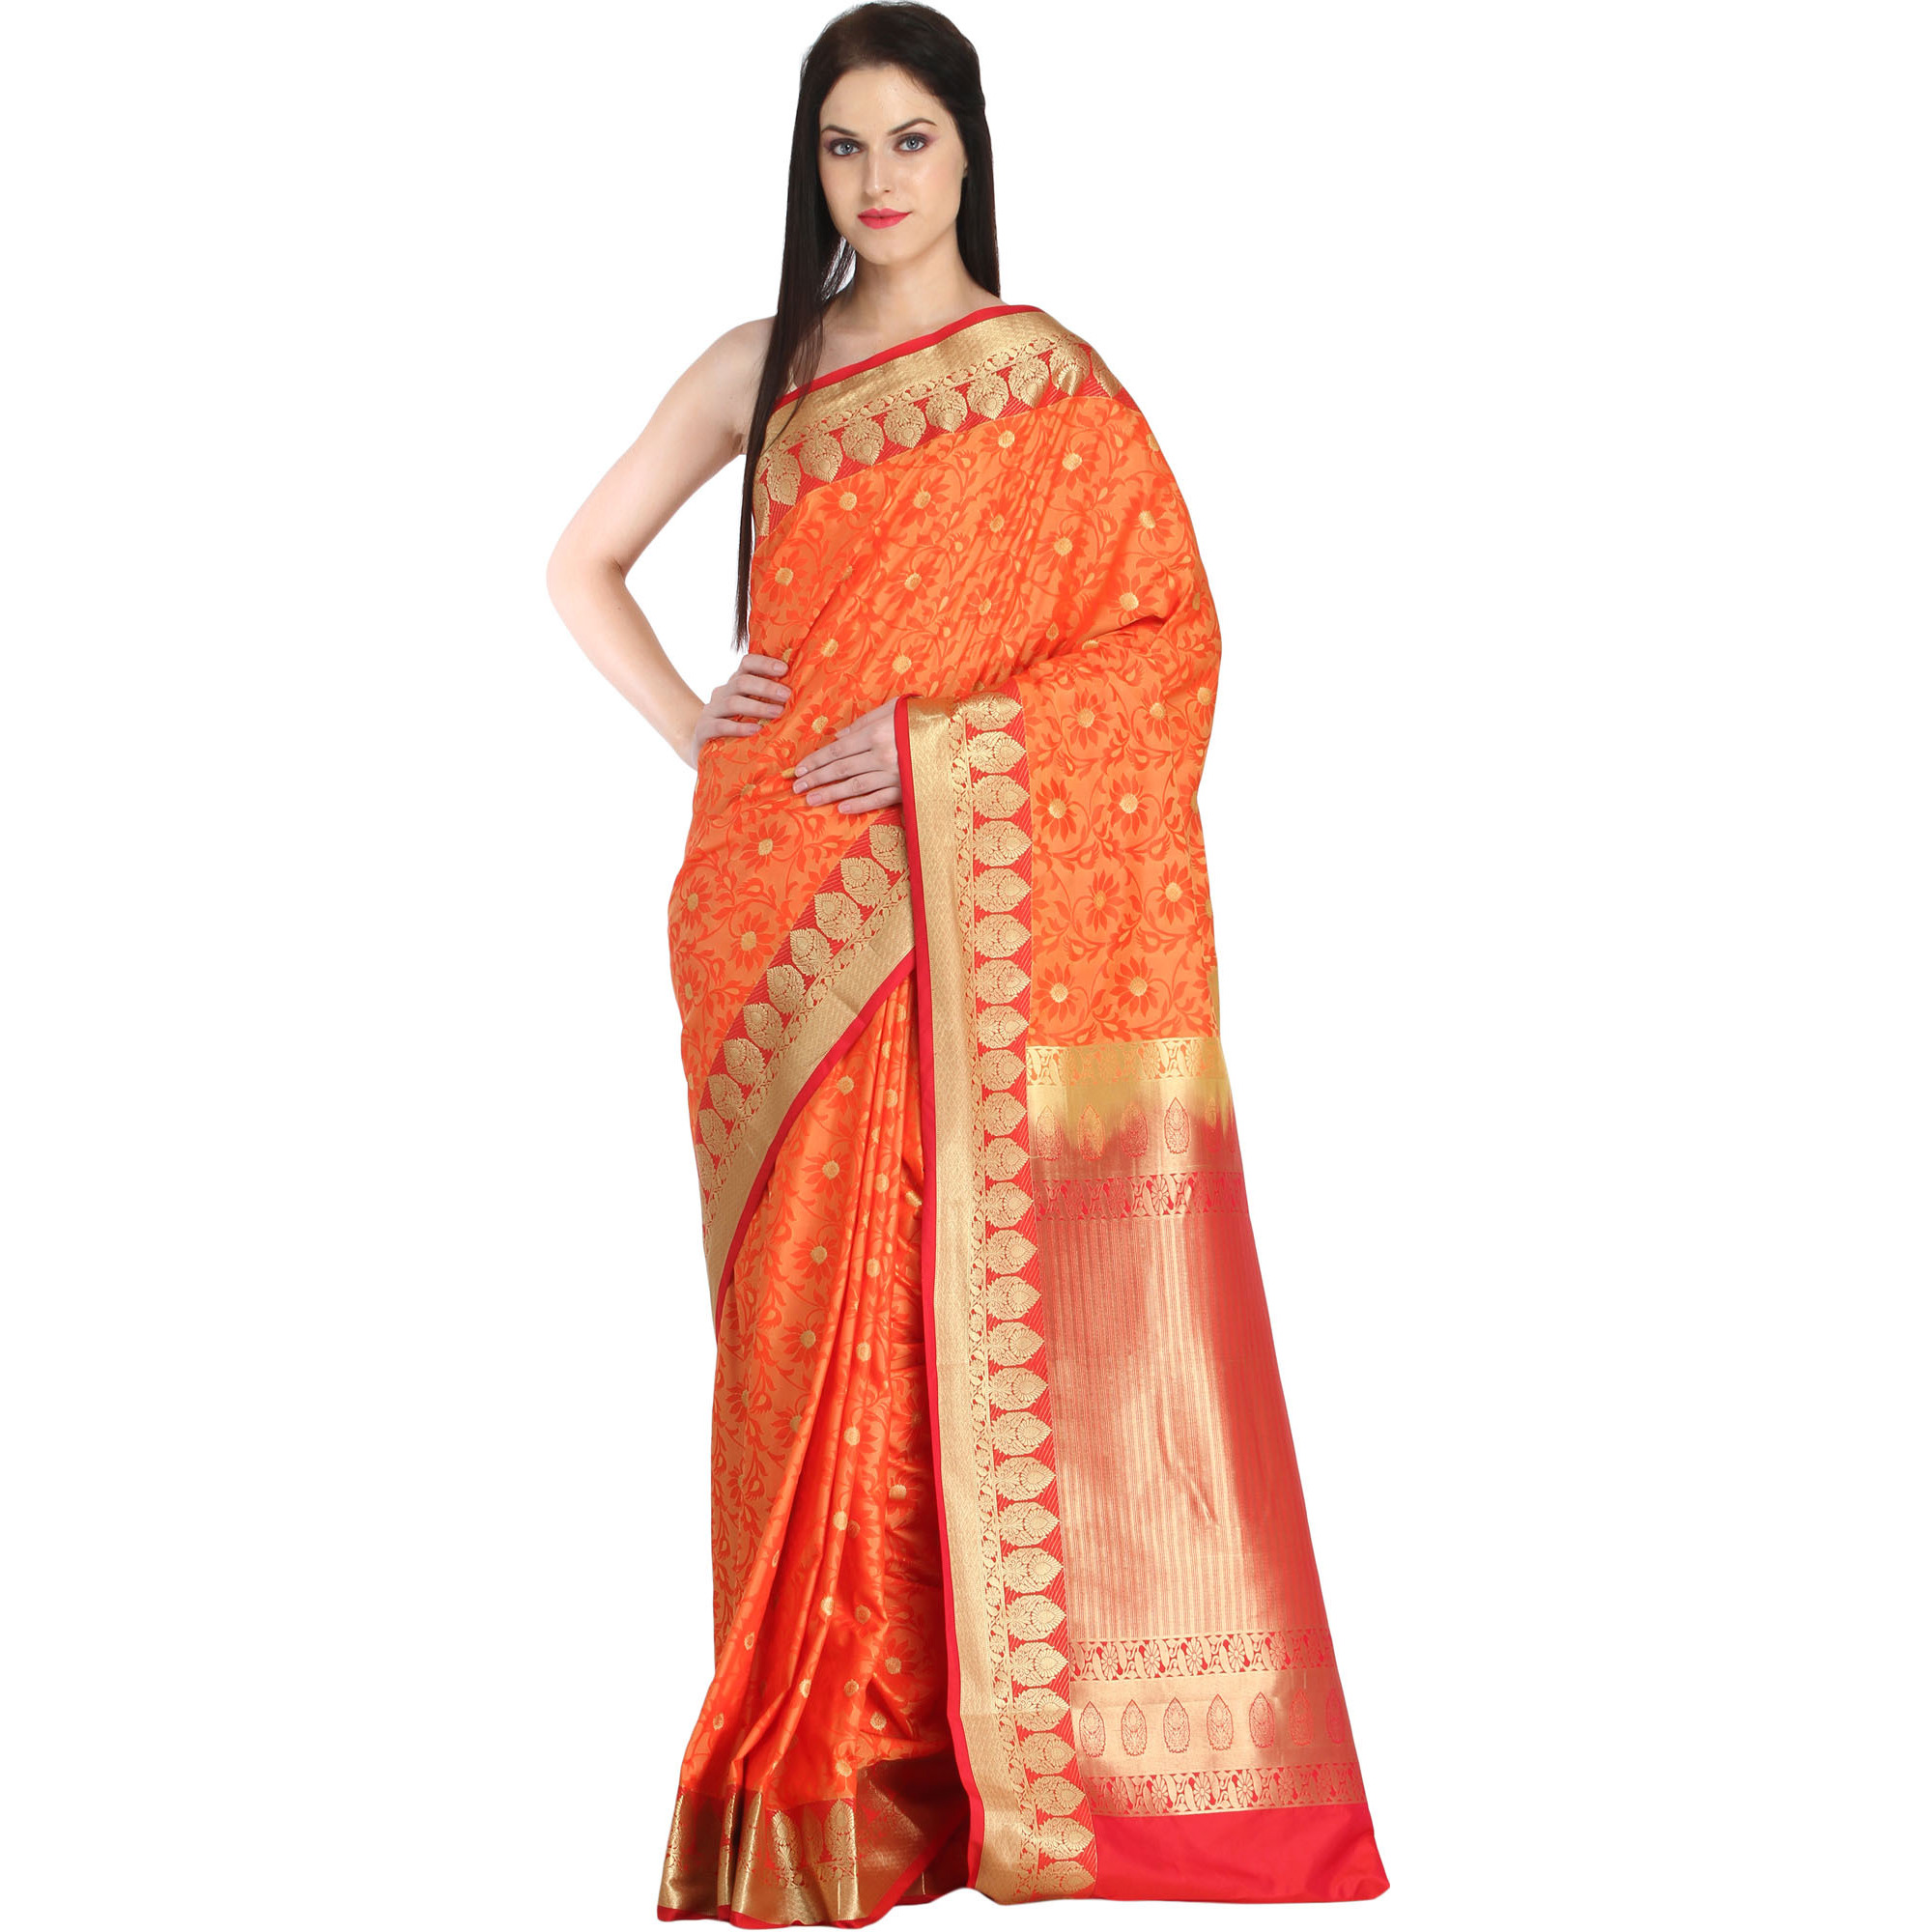 Orange and Red Sari from Bangalore with Woven Flowers and Brocaded Border